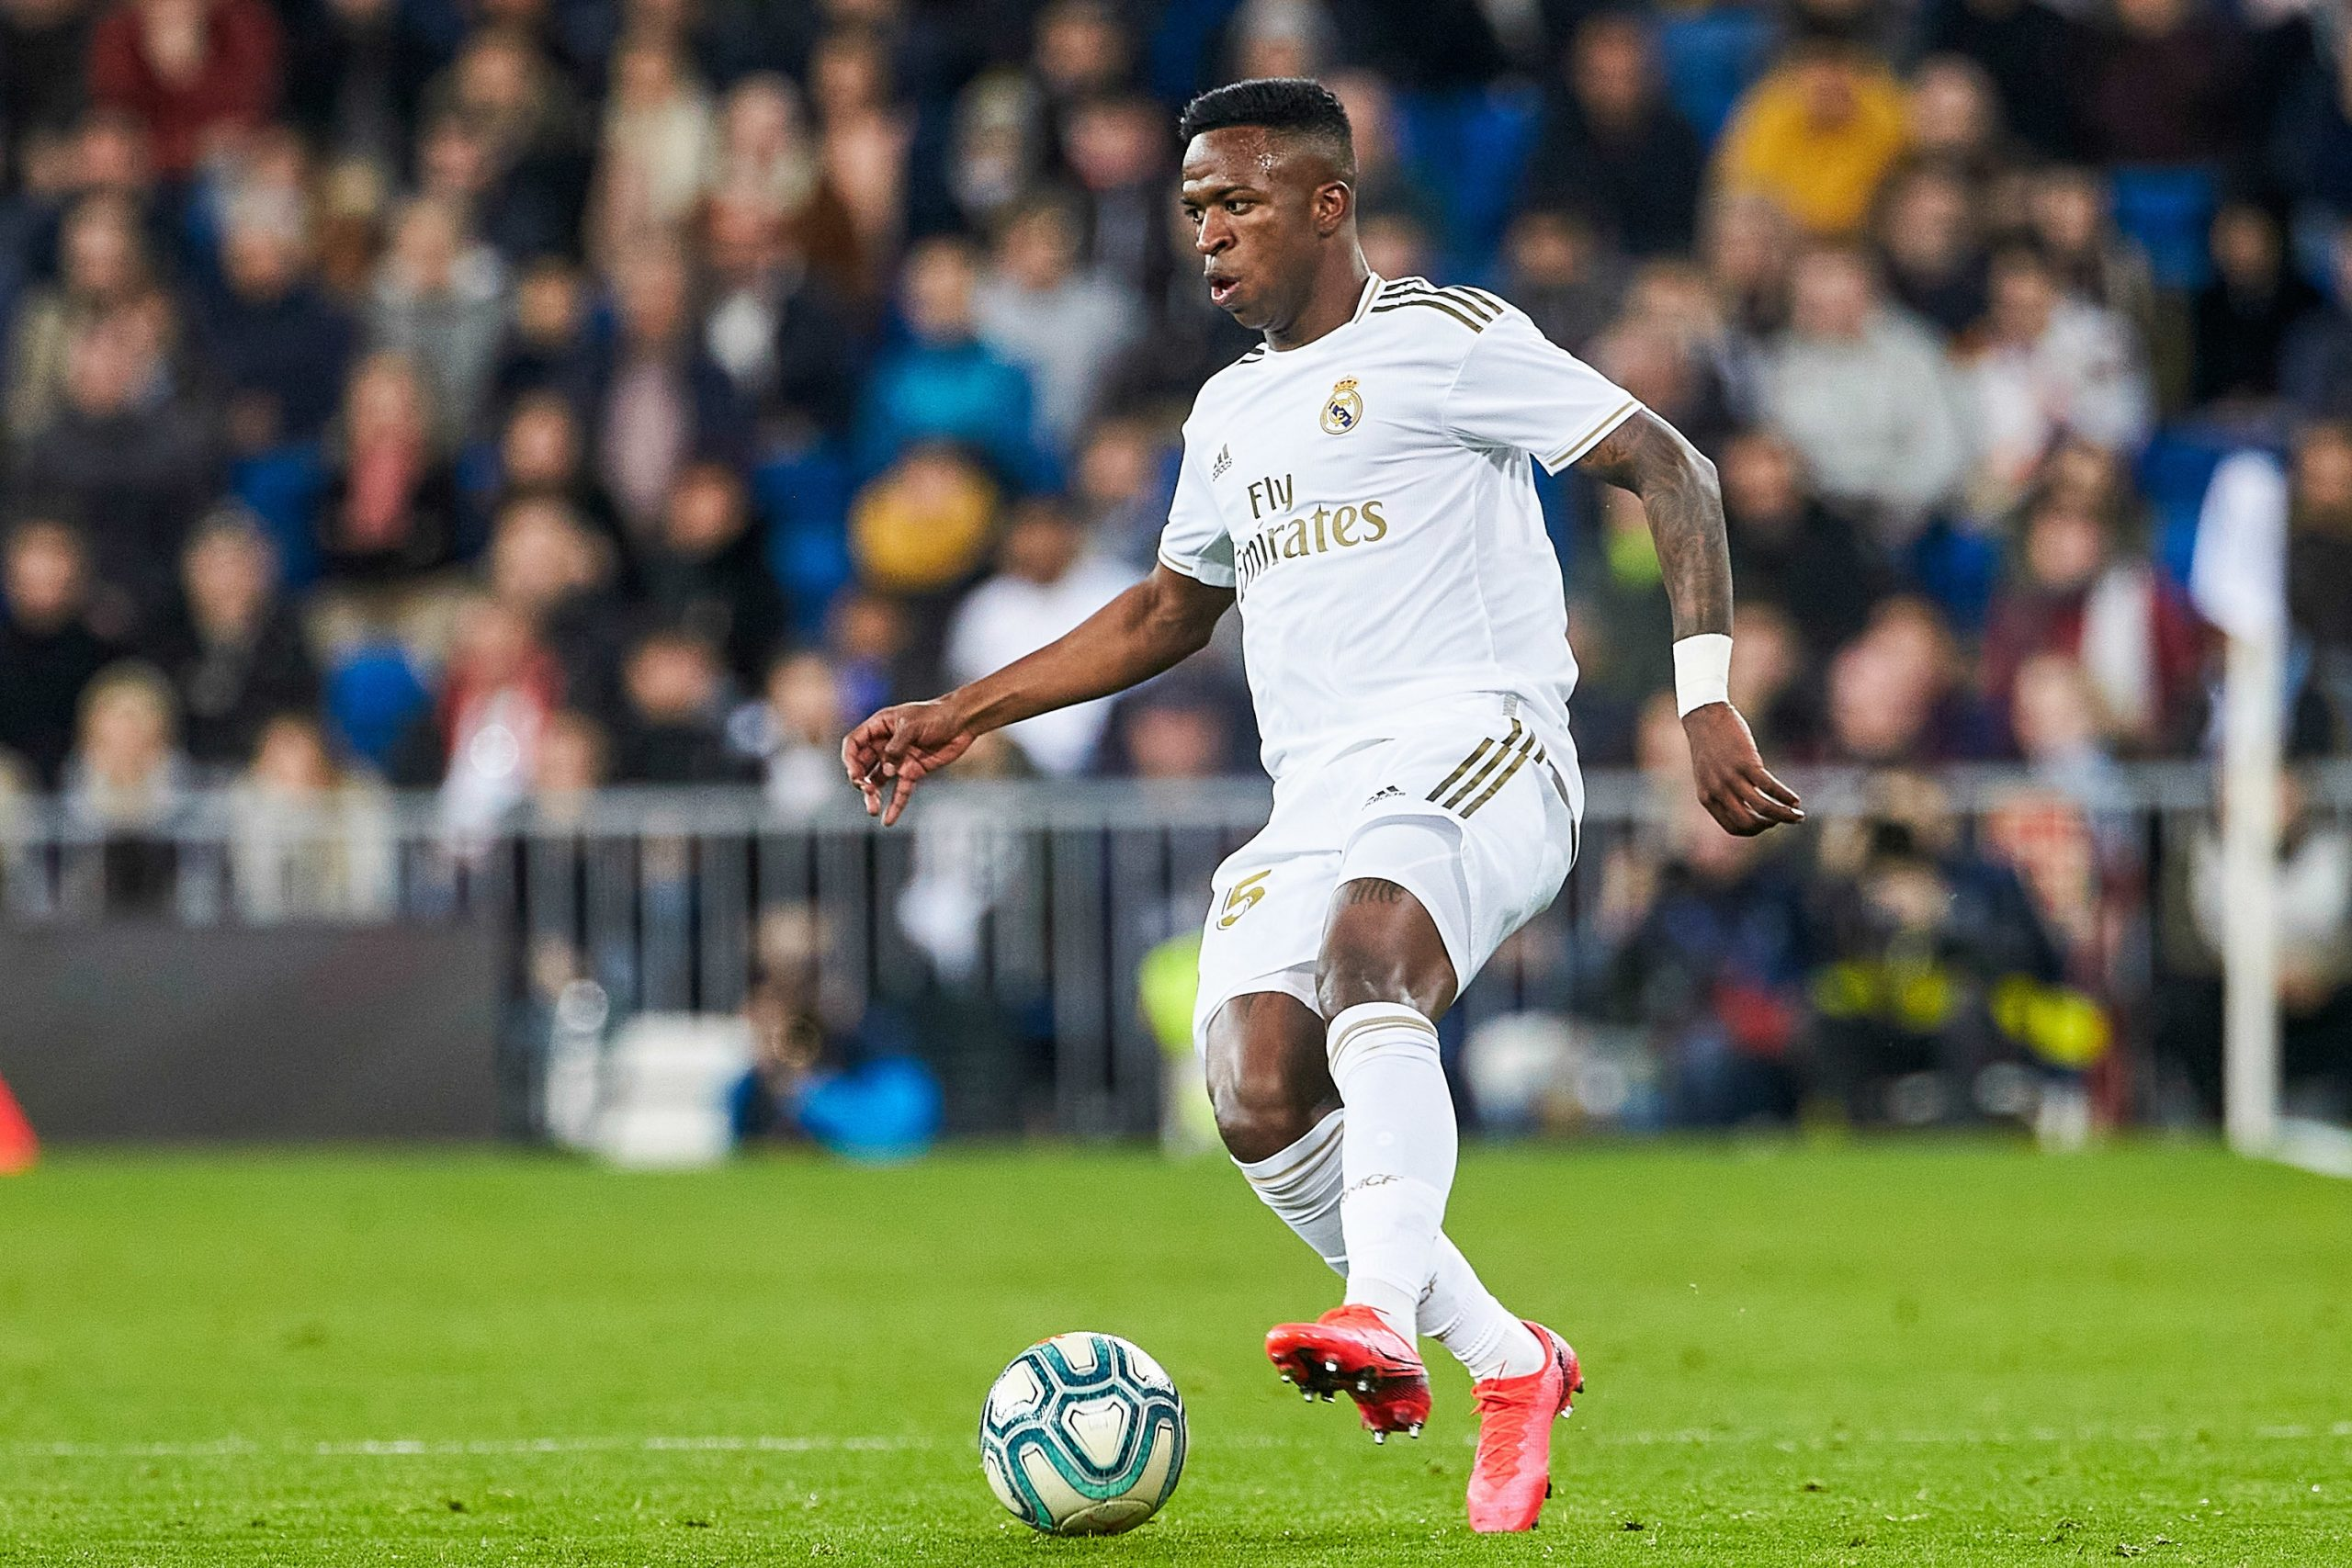 Vinicius voit Neymar capable de « remporter le Ballon d'Or »